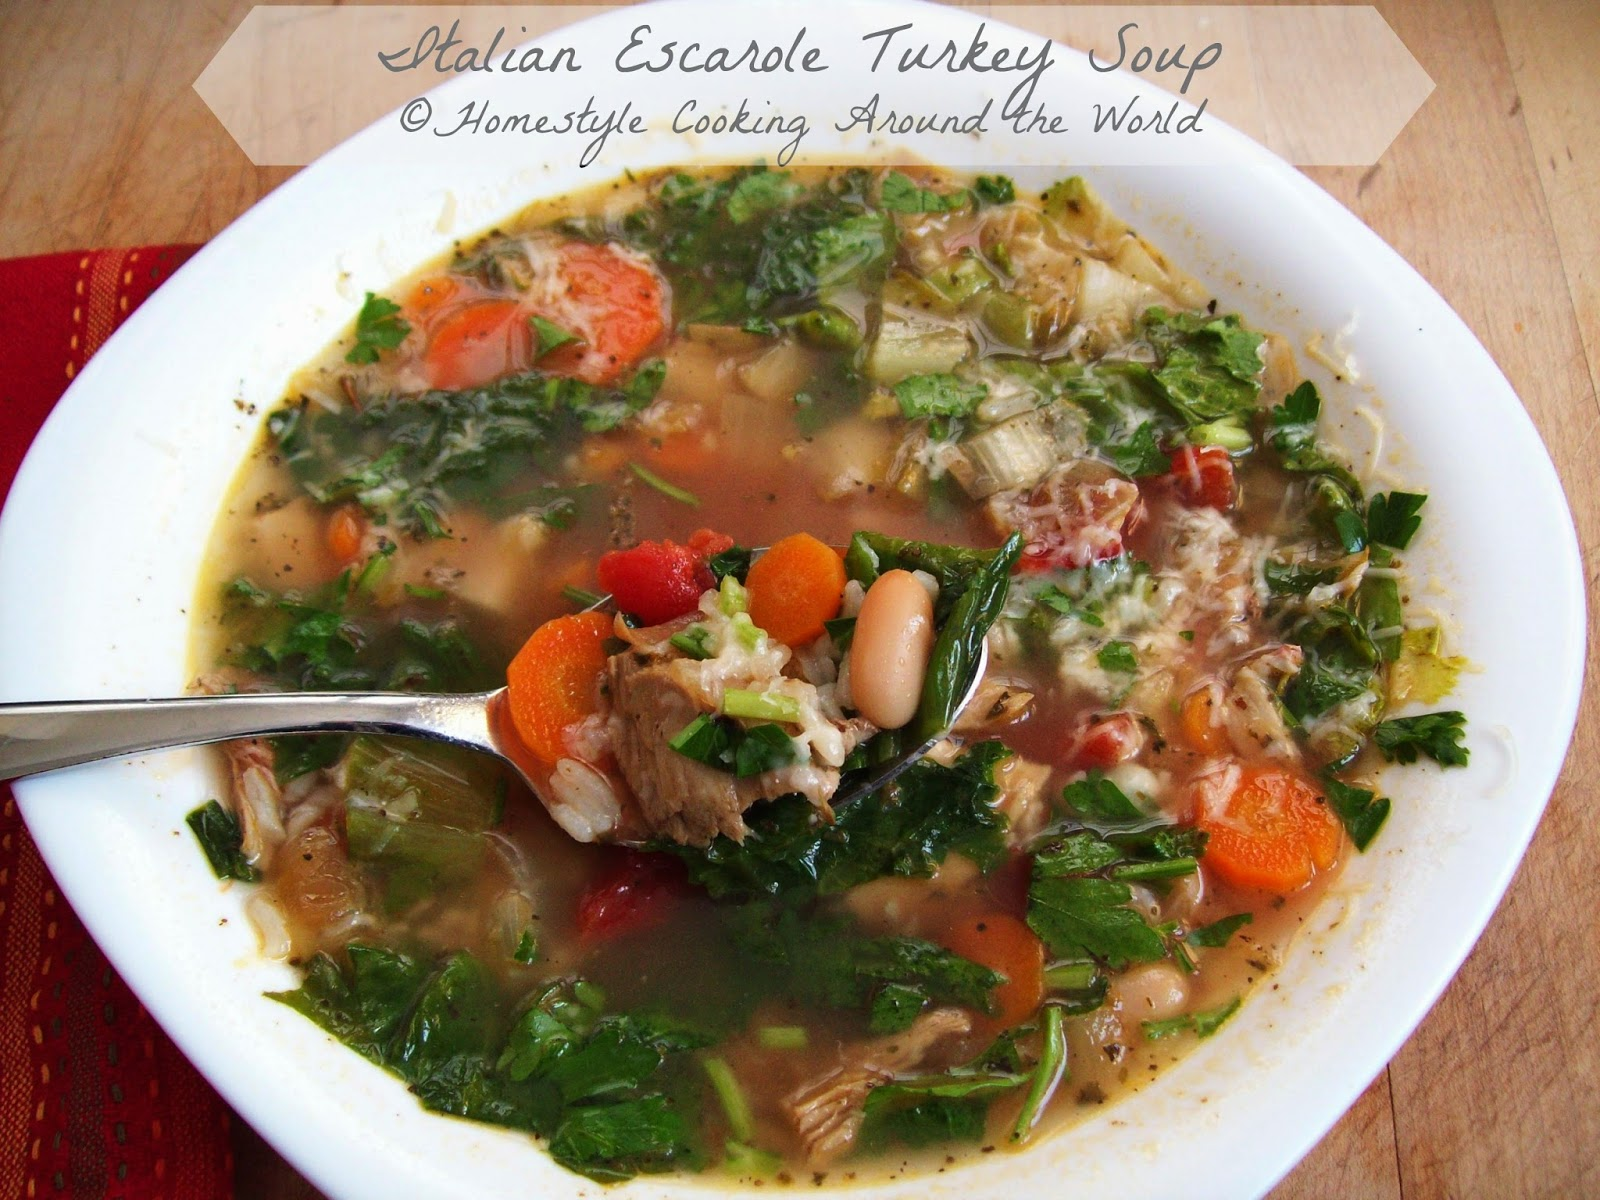 Homestyle Cooking Around The World: Italian Escarole Turkey Soup